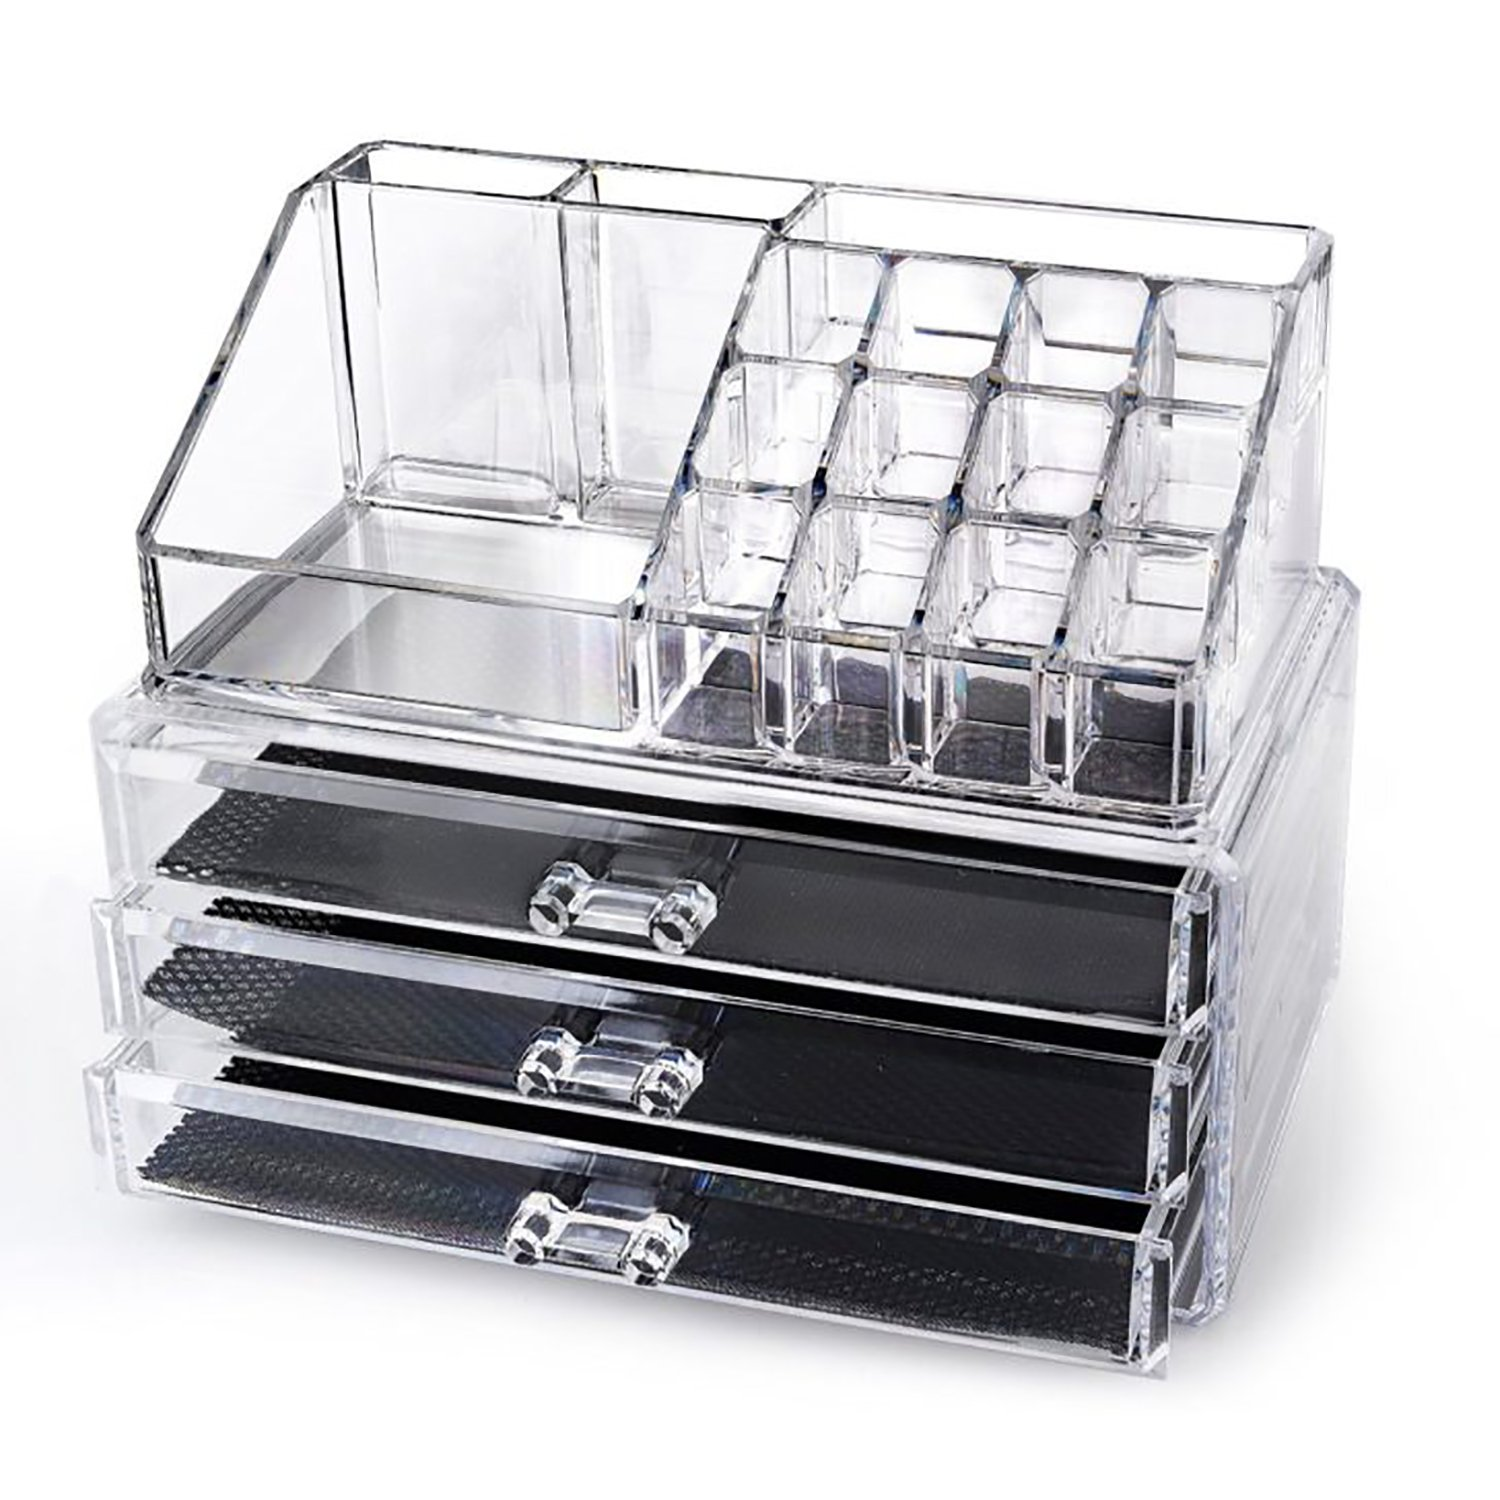 Royal Brands Acrylic Cosmetics Makeup Cosmetic Holder Vanity Storage Organizer Tray Caddy 2 Pieces